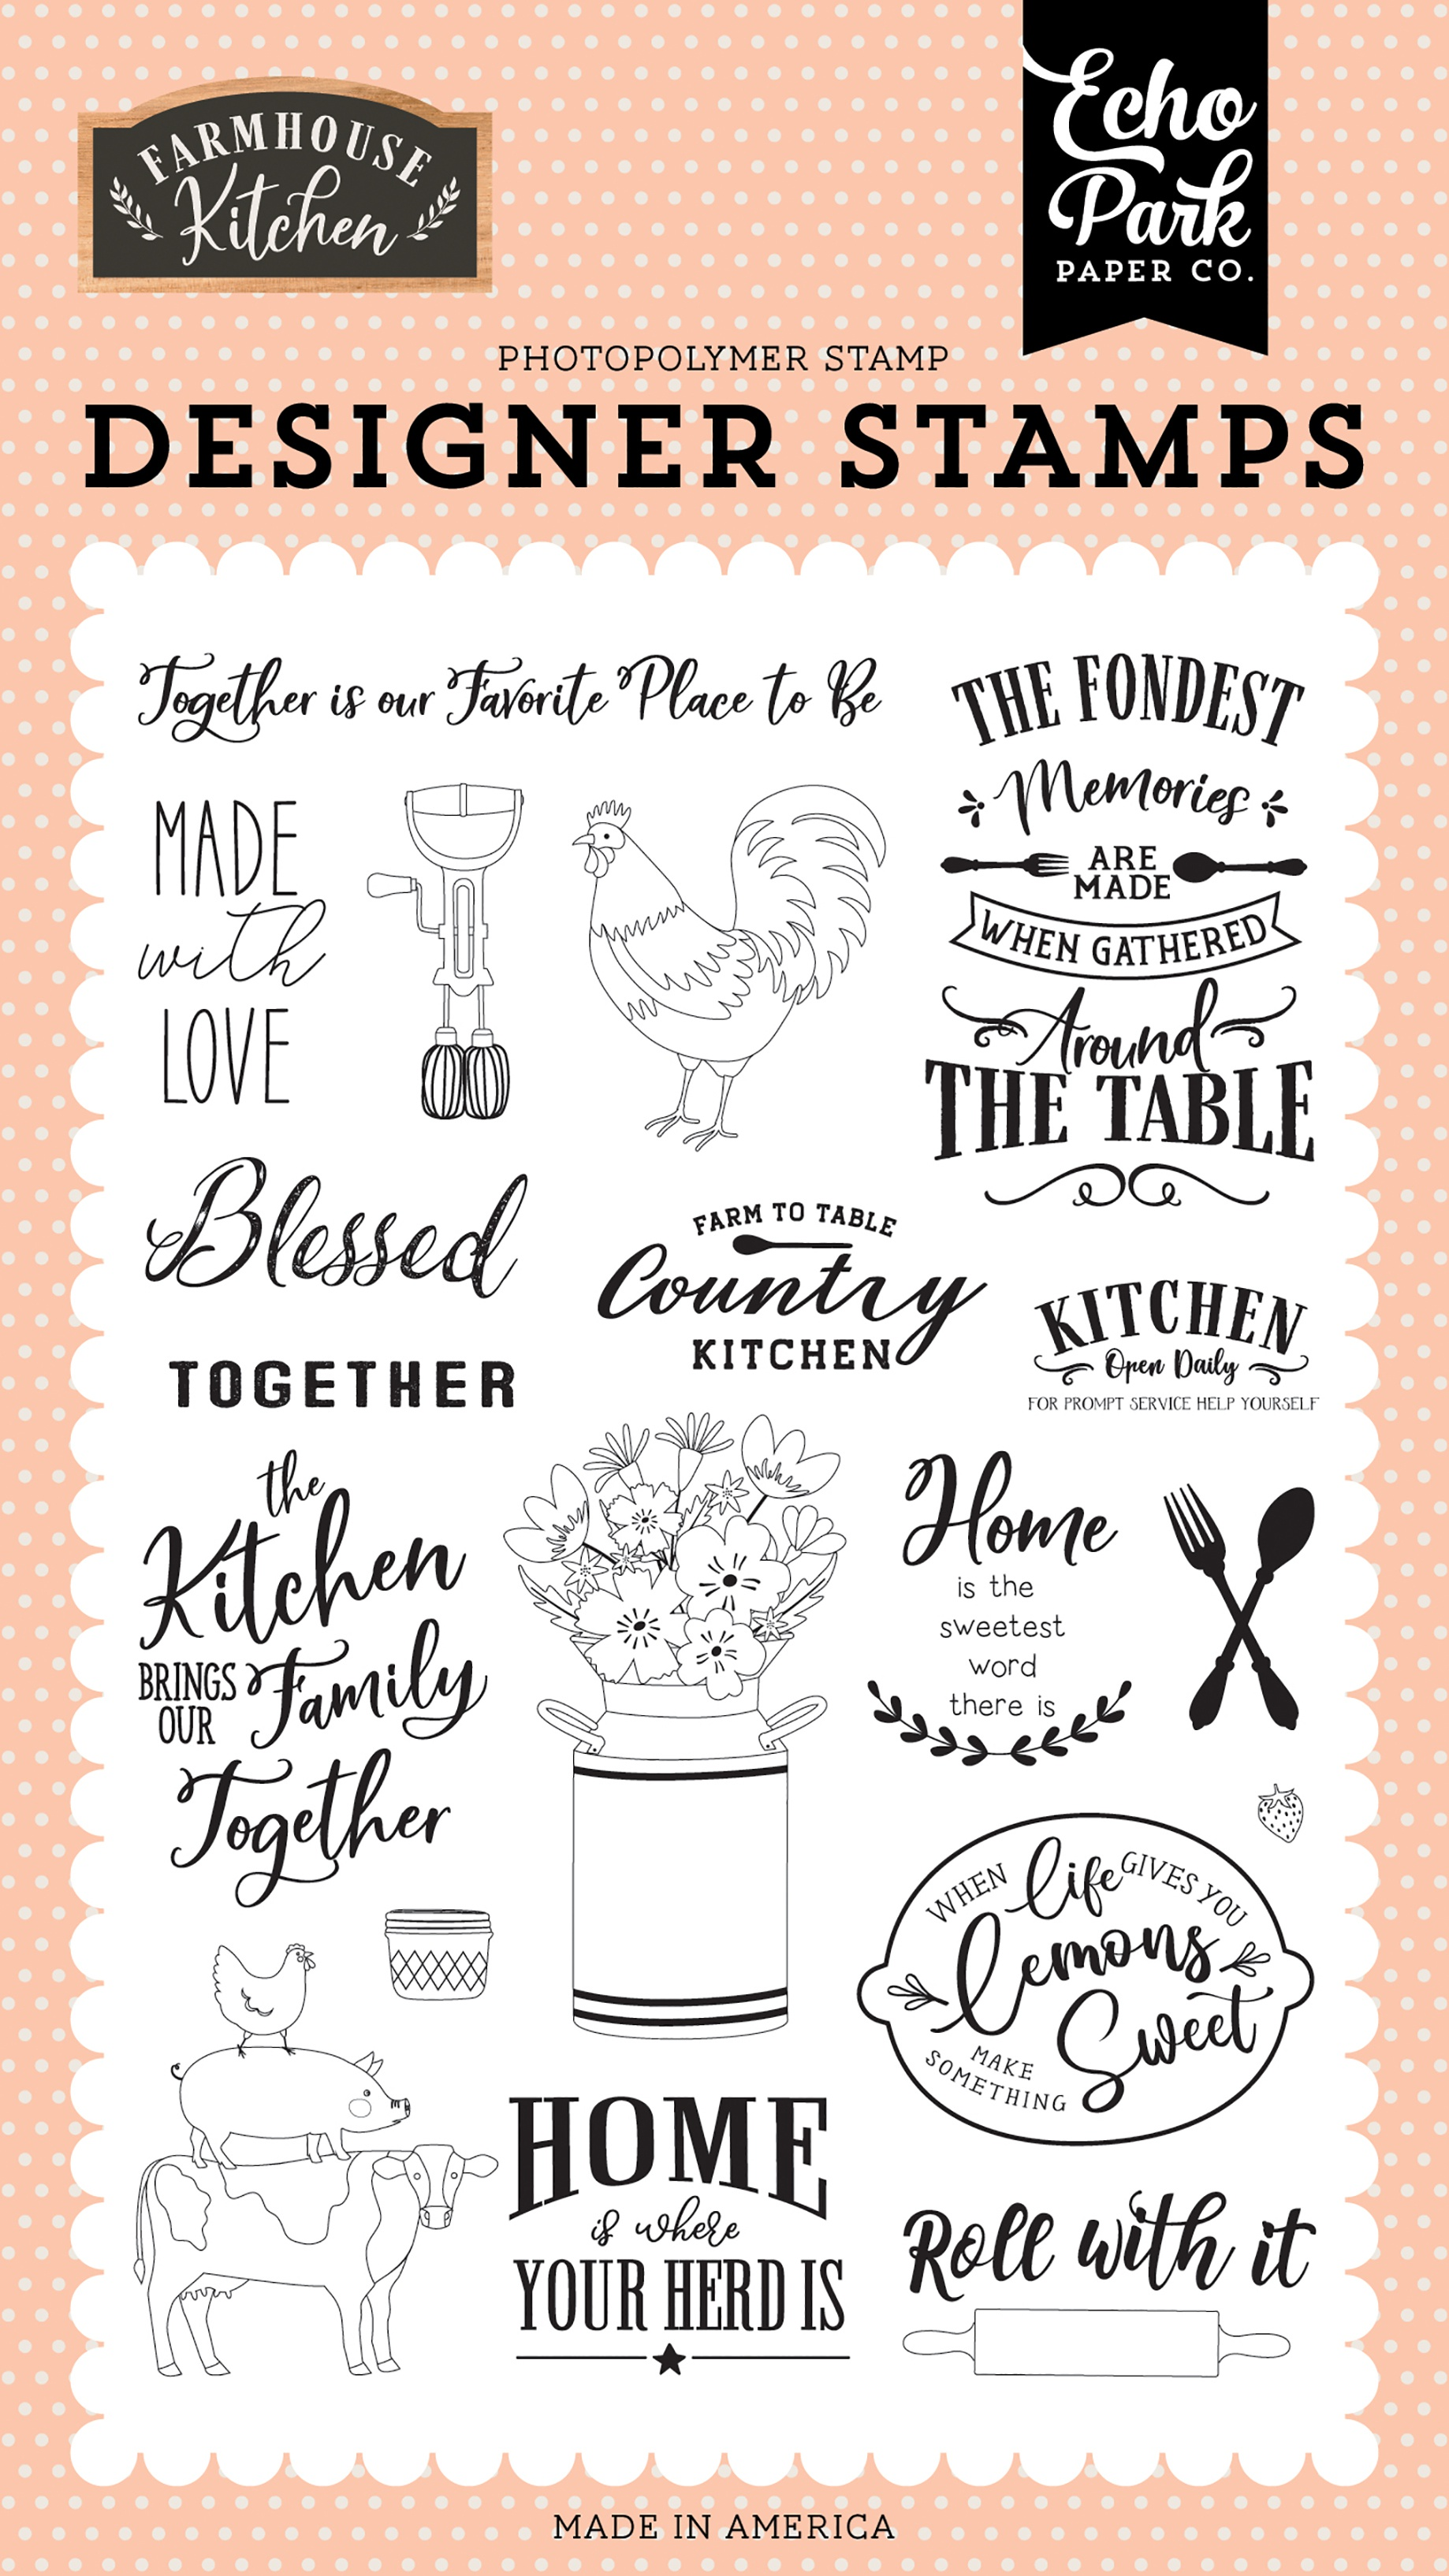 Farmhouse Kitchen Made With Love Stamp Set